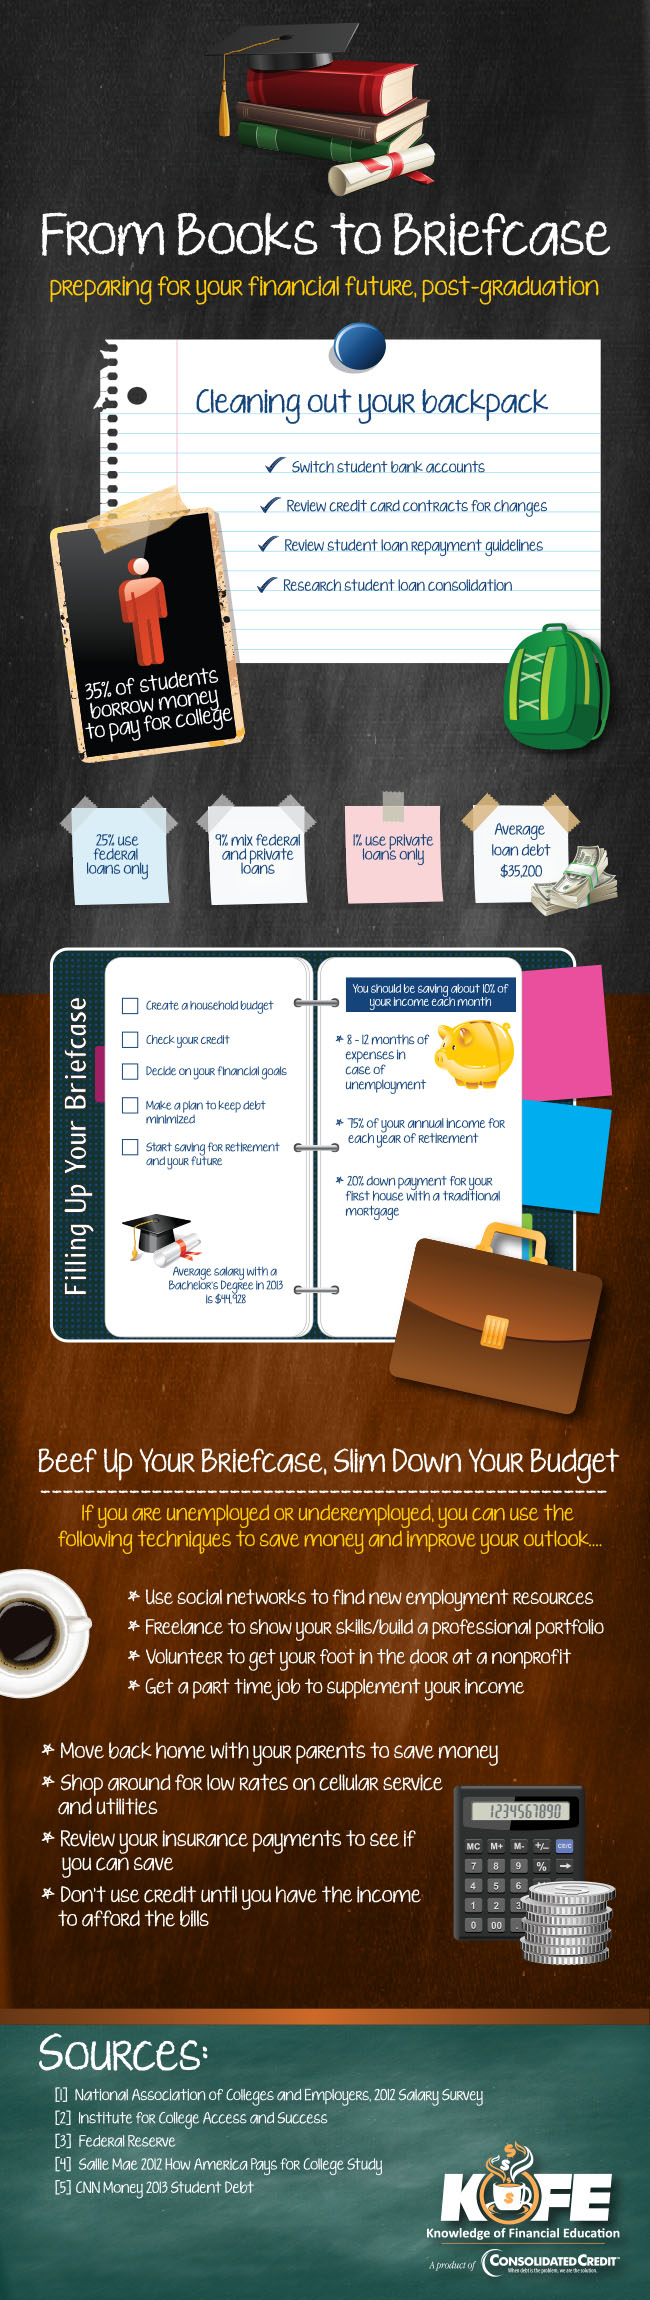 From Books to briefcase infographic